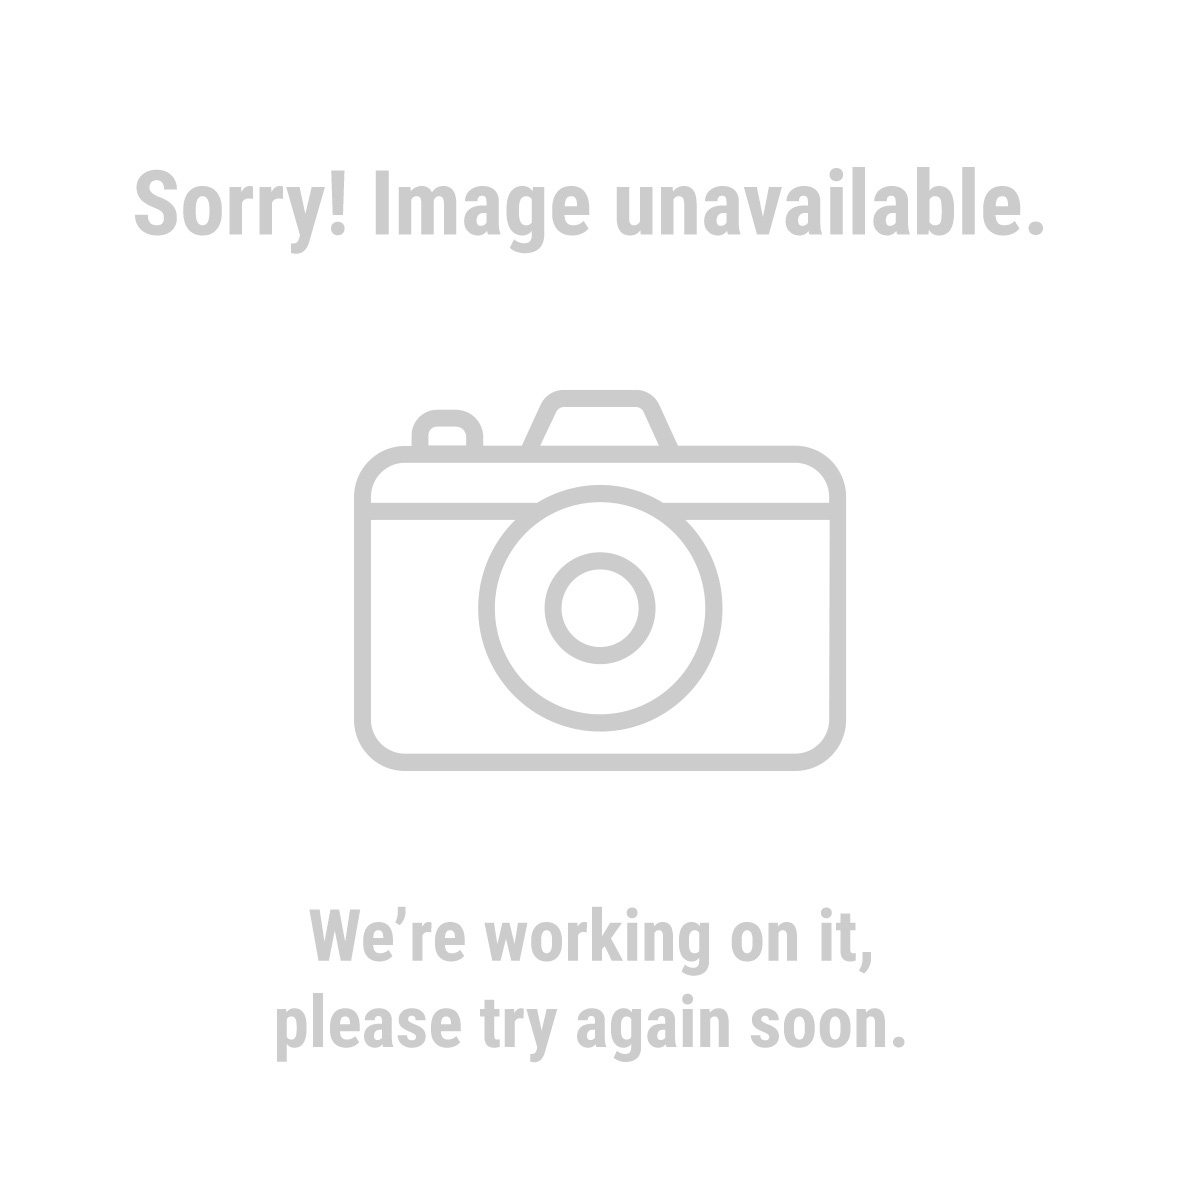 Harbor Freight Roofing Nailer